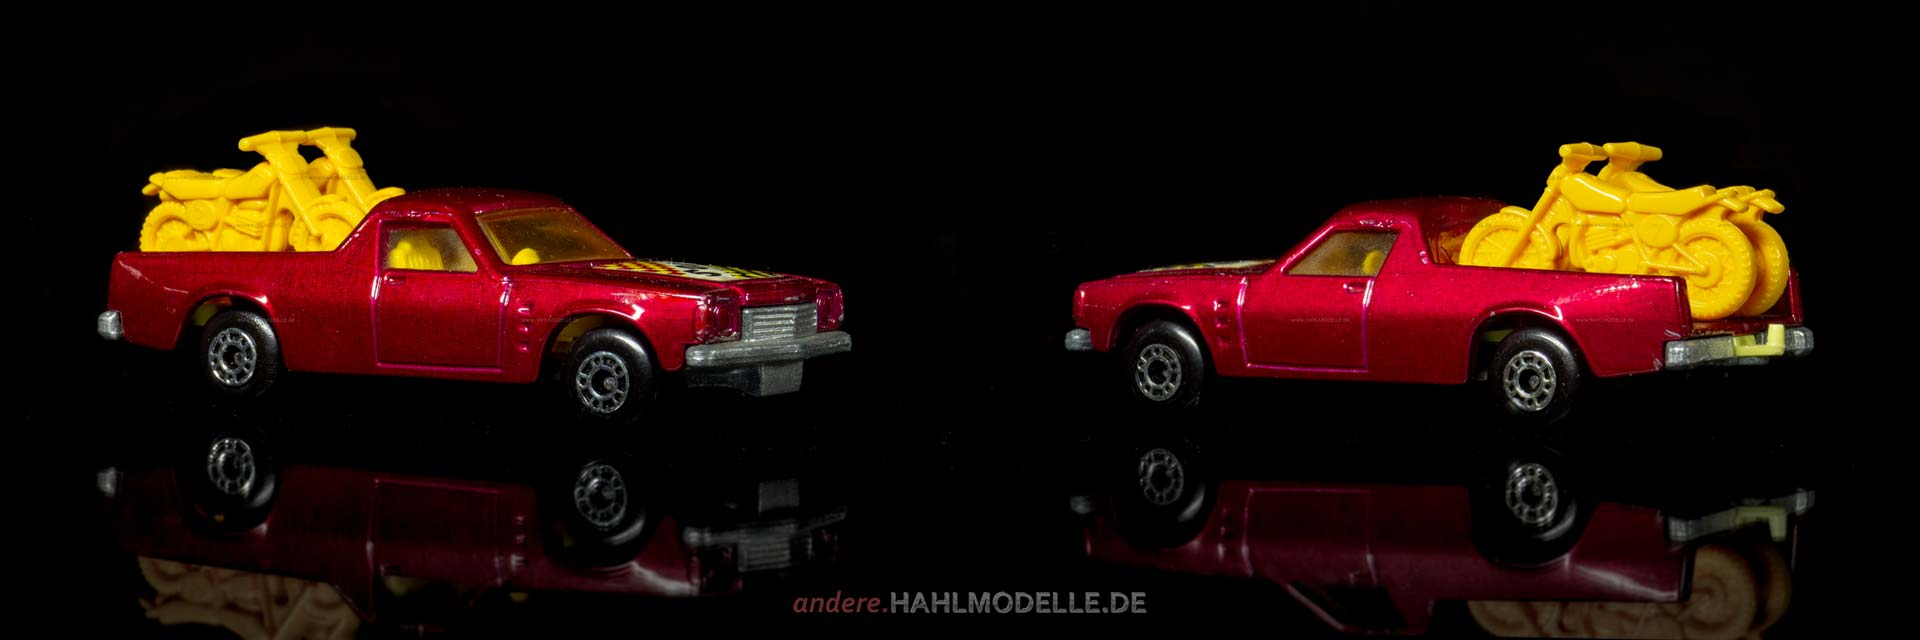 Holden Utility HJ | Pickup | Lesney Products & Co. Ltd. | Matchbox Superfast Holden Pickup GF | www.andere.hahlmodelle.de